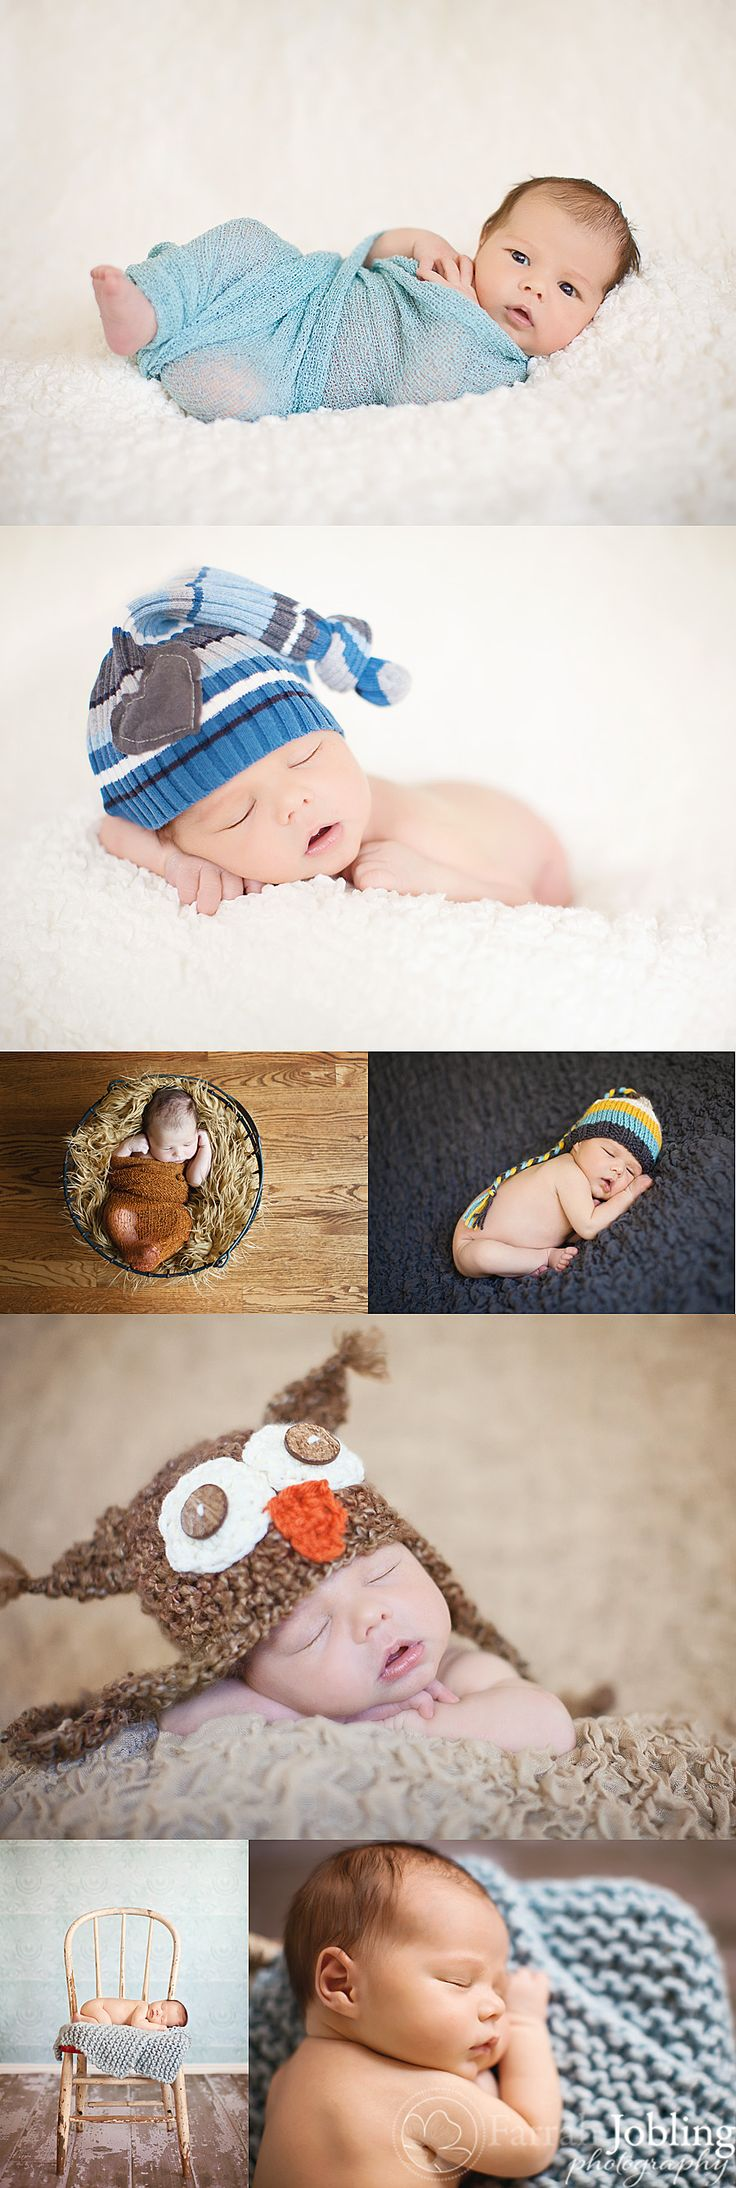 Some cute baby props